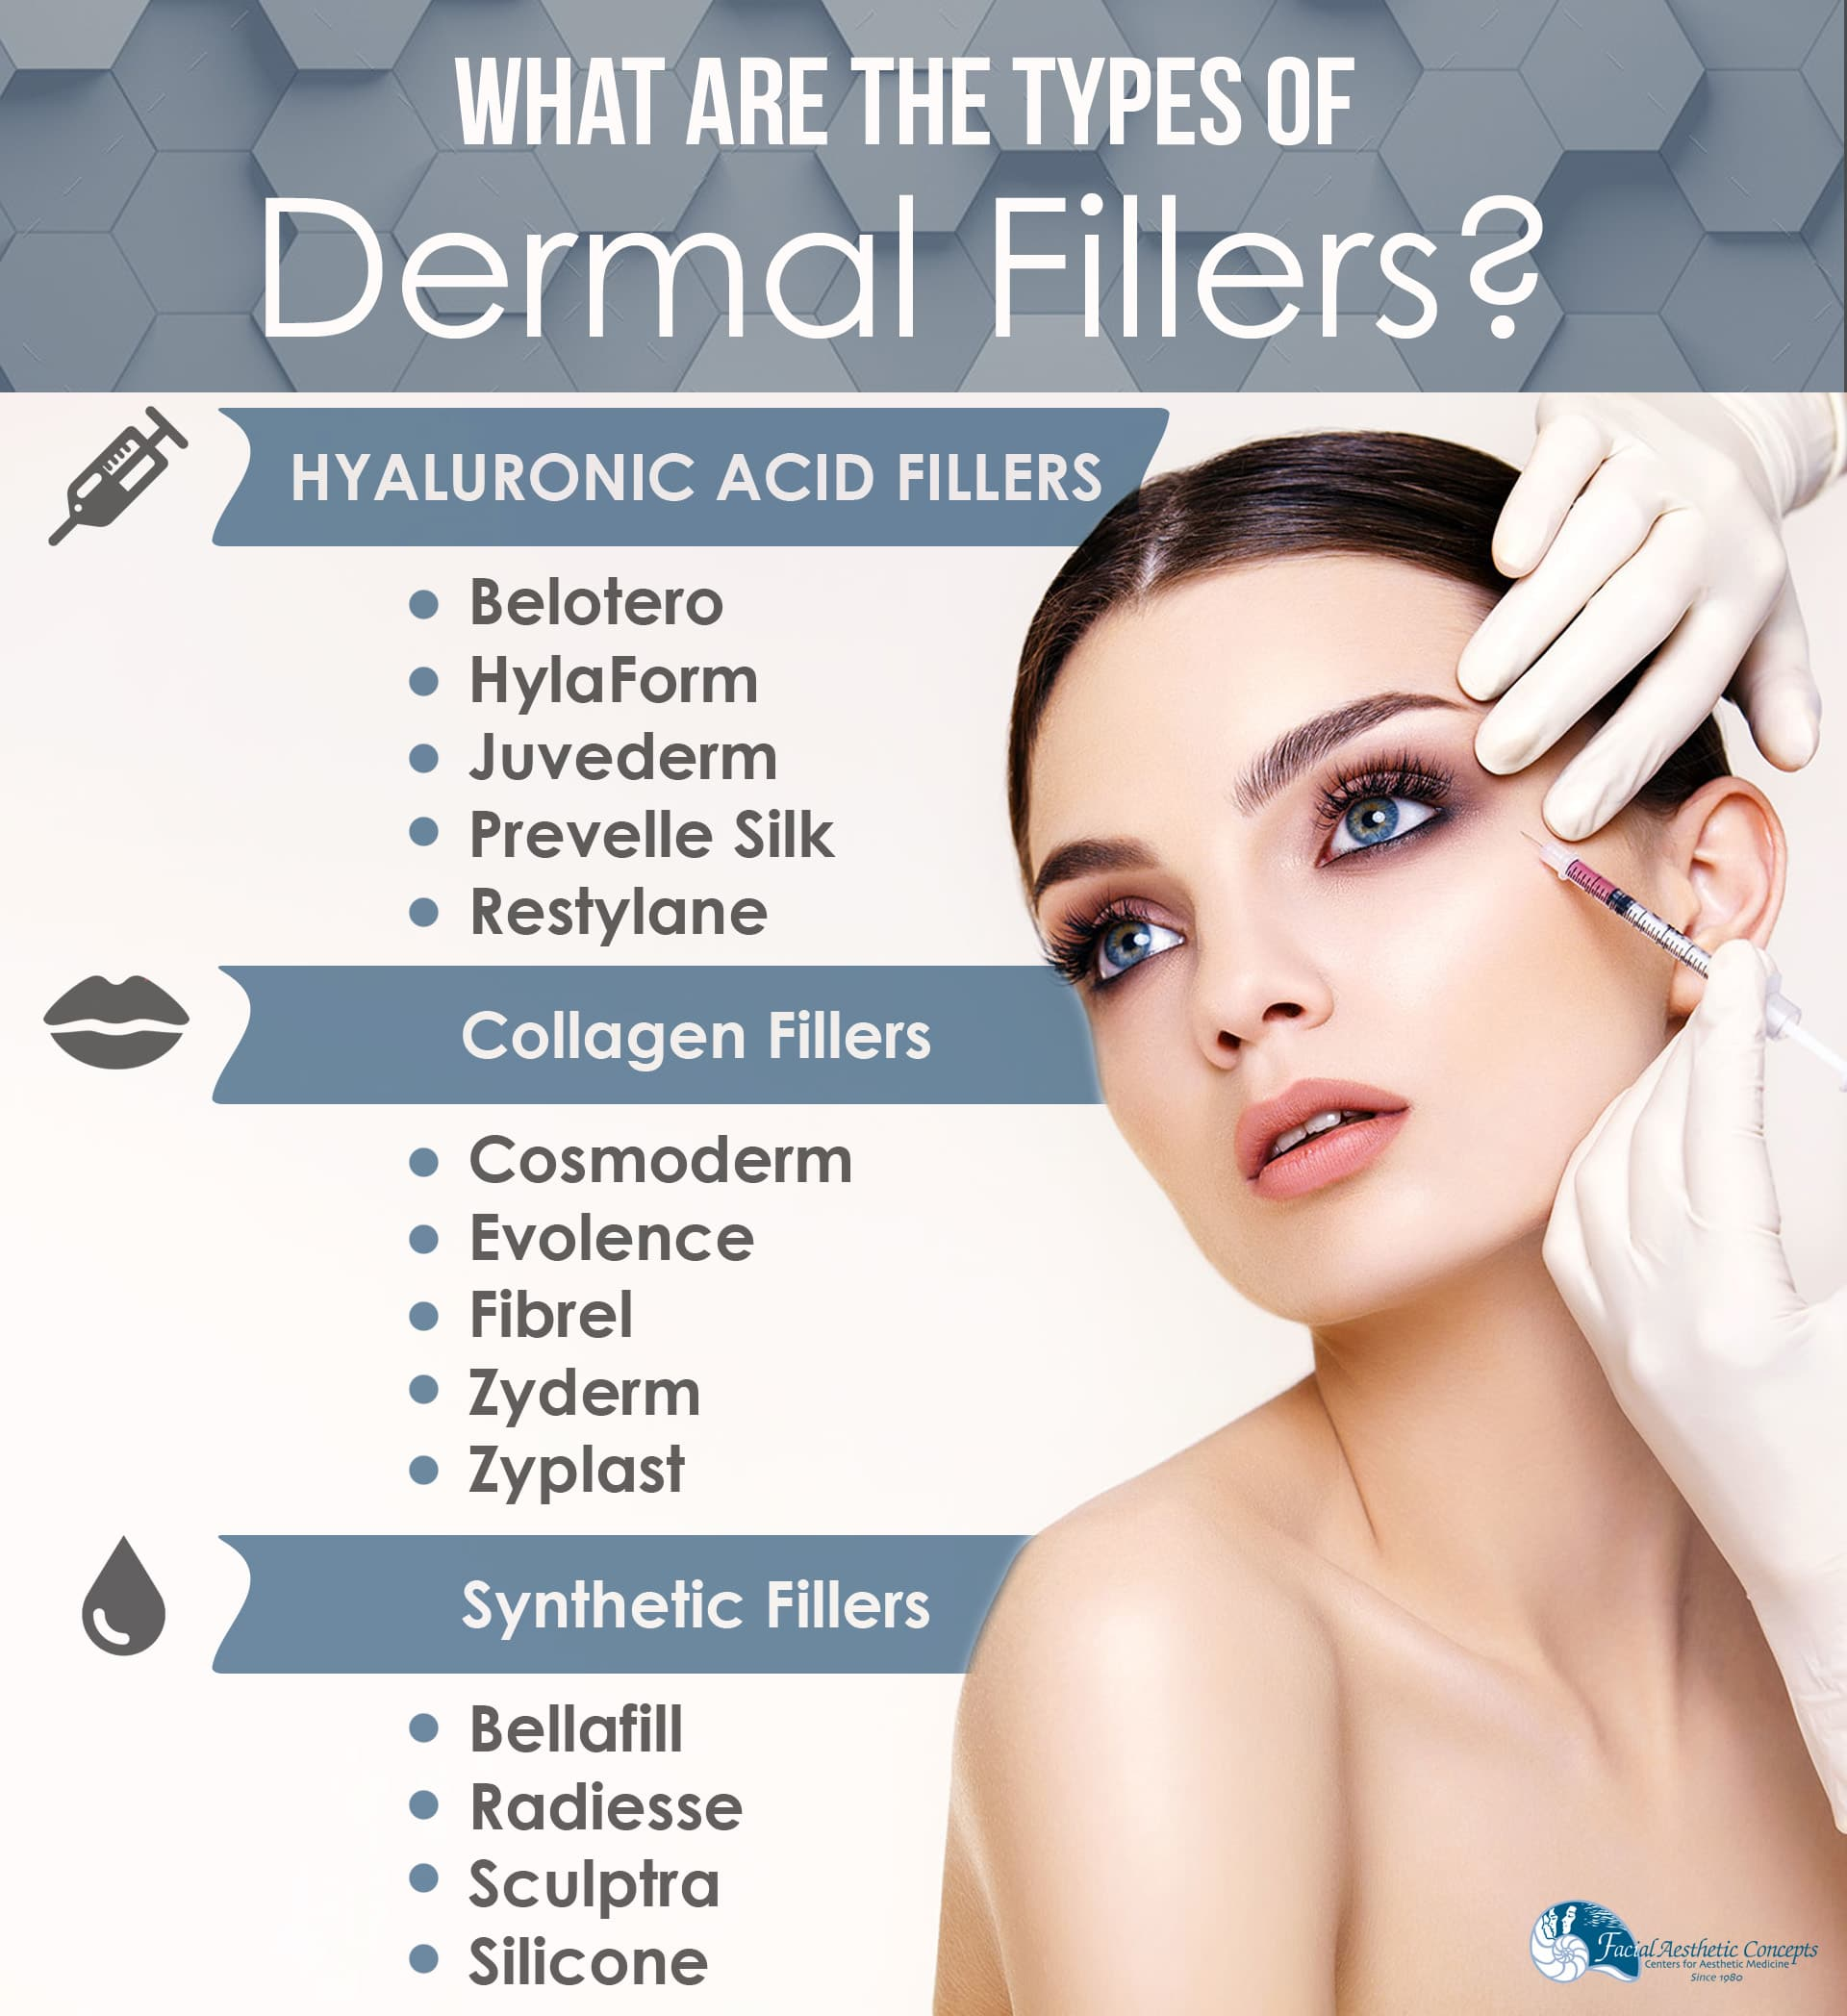 What Are the Types of Dermal Fillers